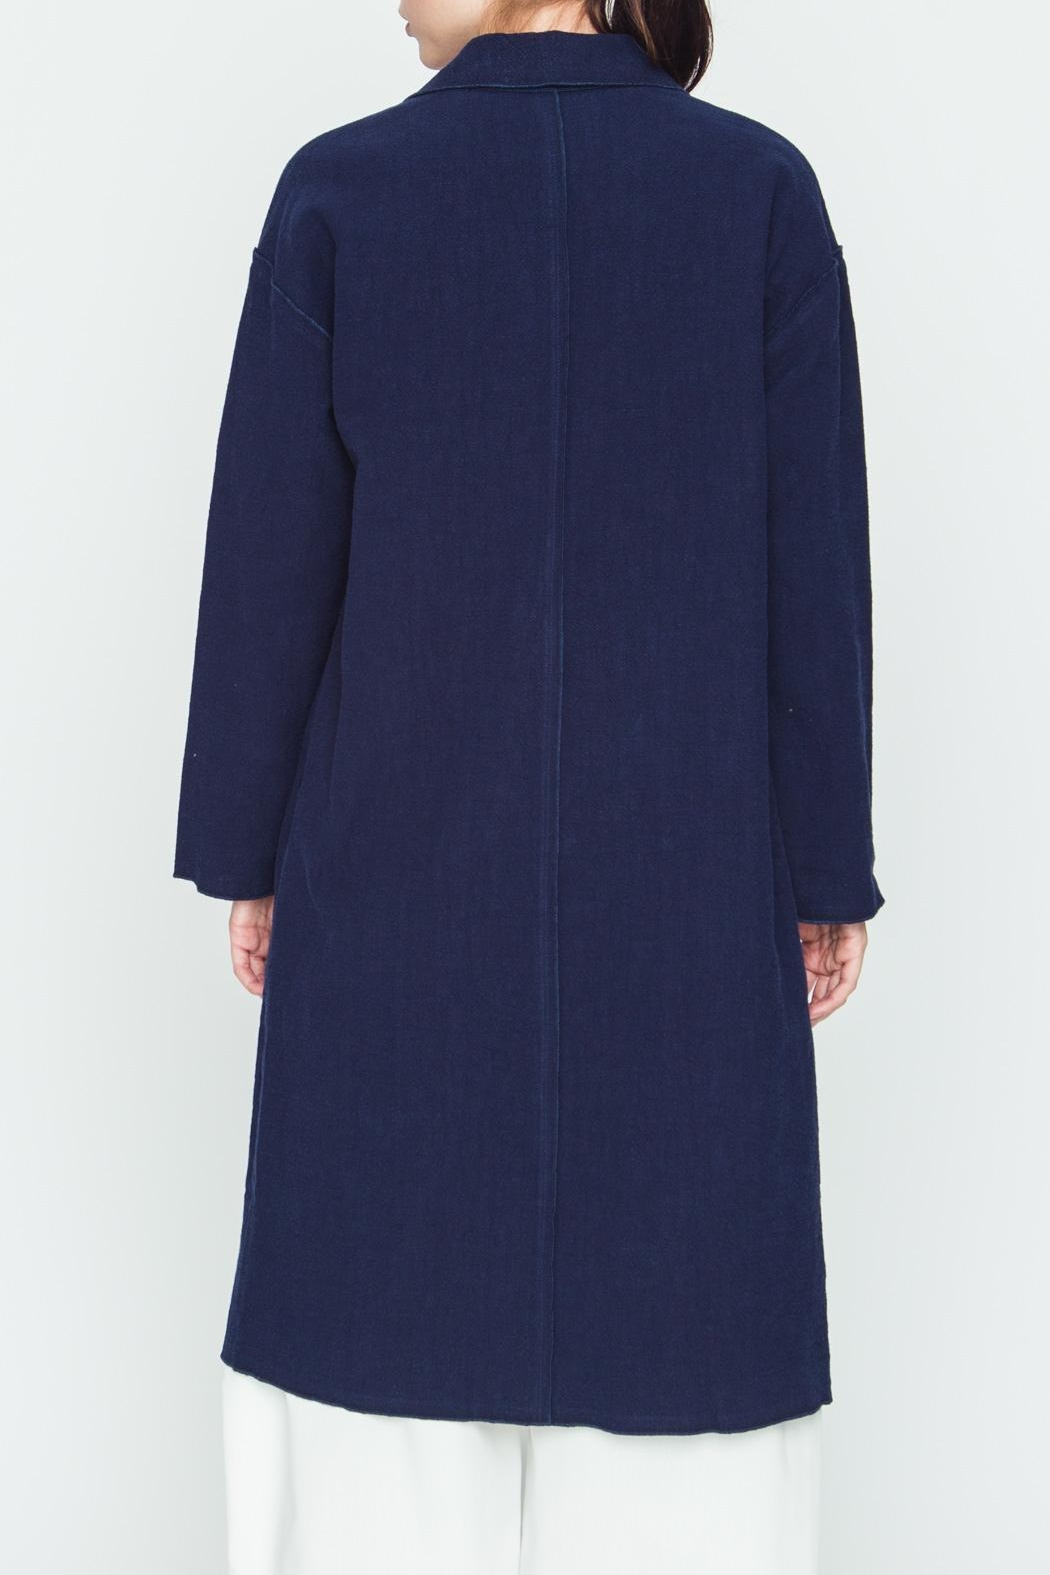 Movint Milano Open-Front Coat - Side Cropped Image